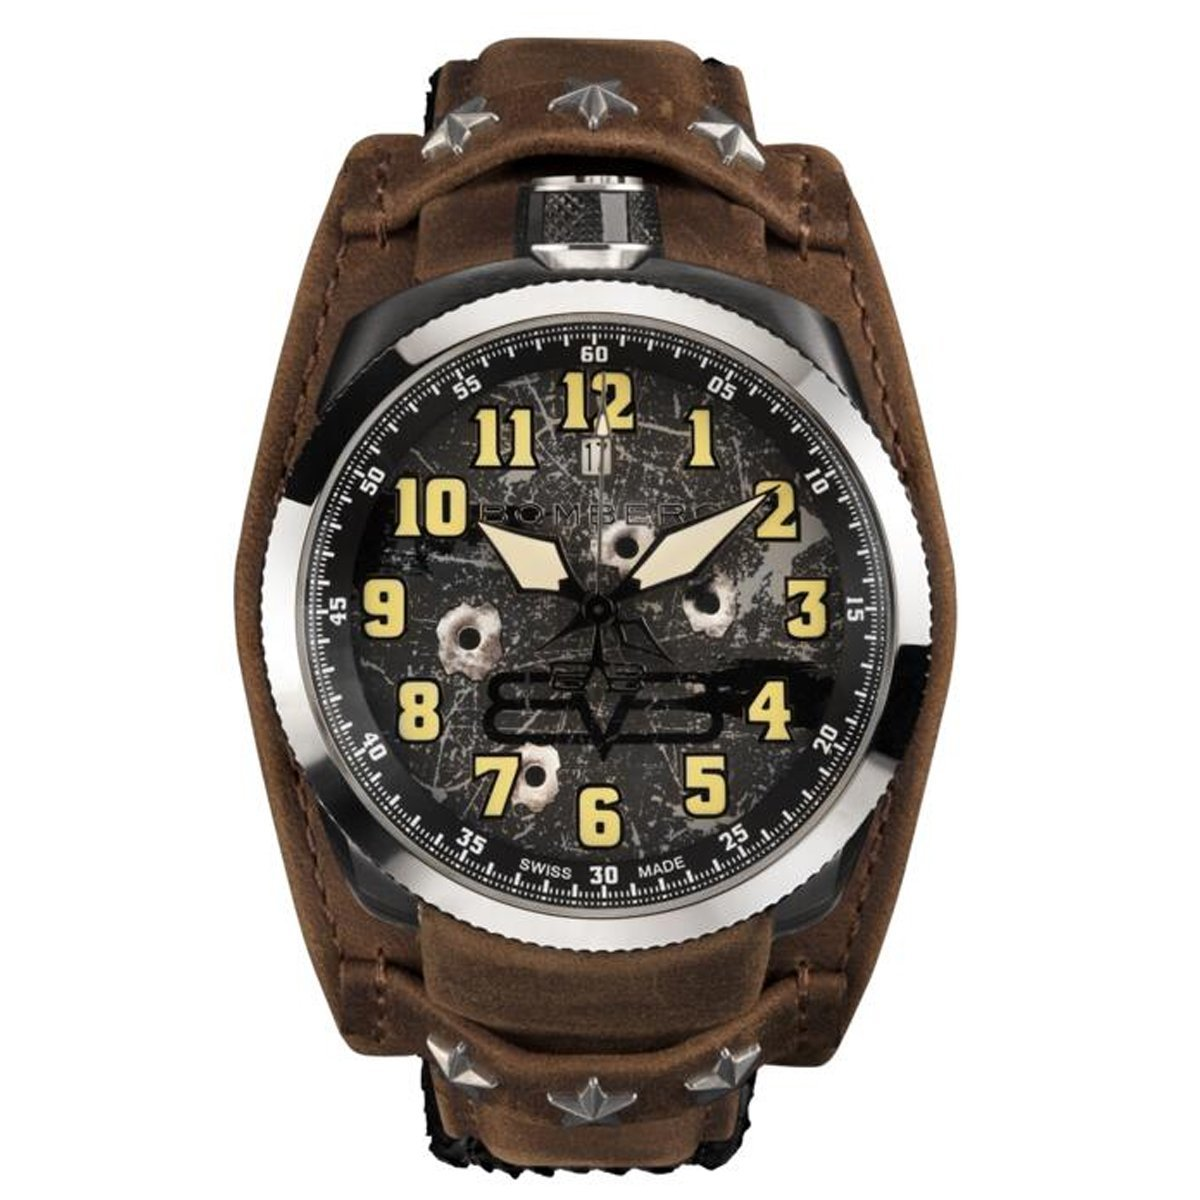 Bomberg BOLT-68 Pilot Vintage - Watches & Crystals